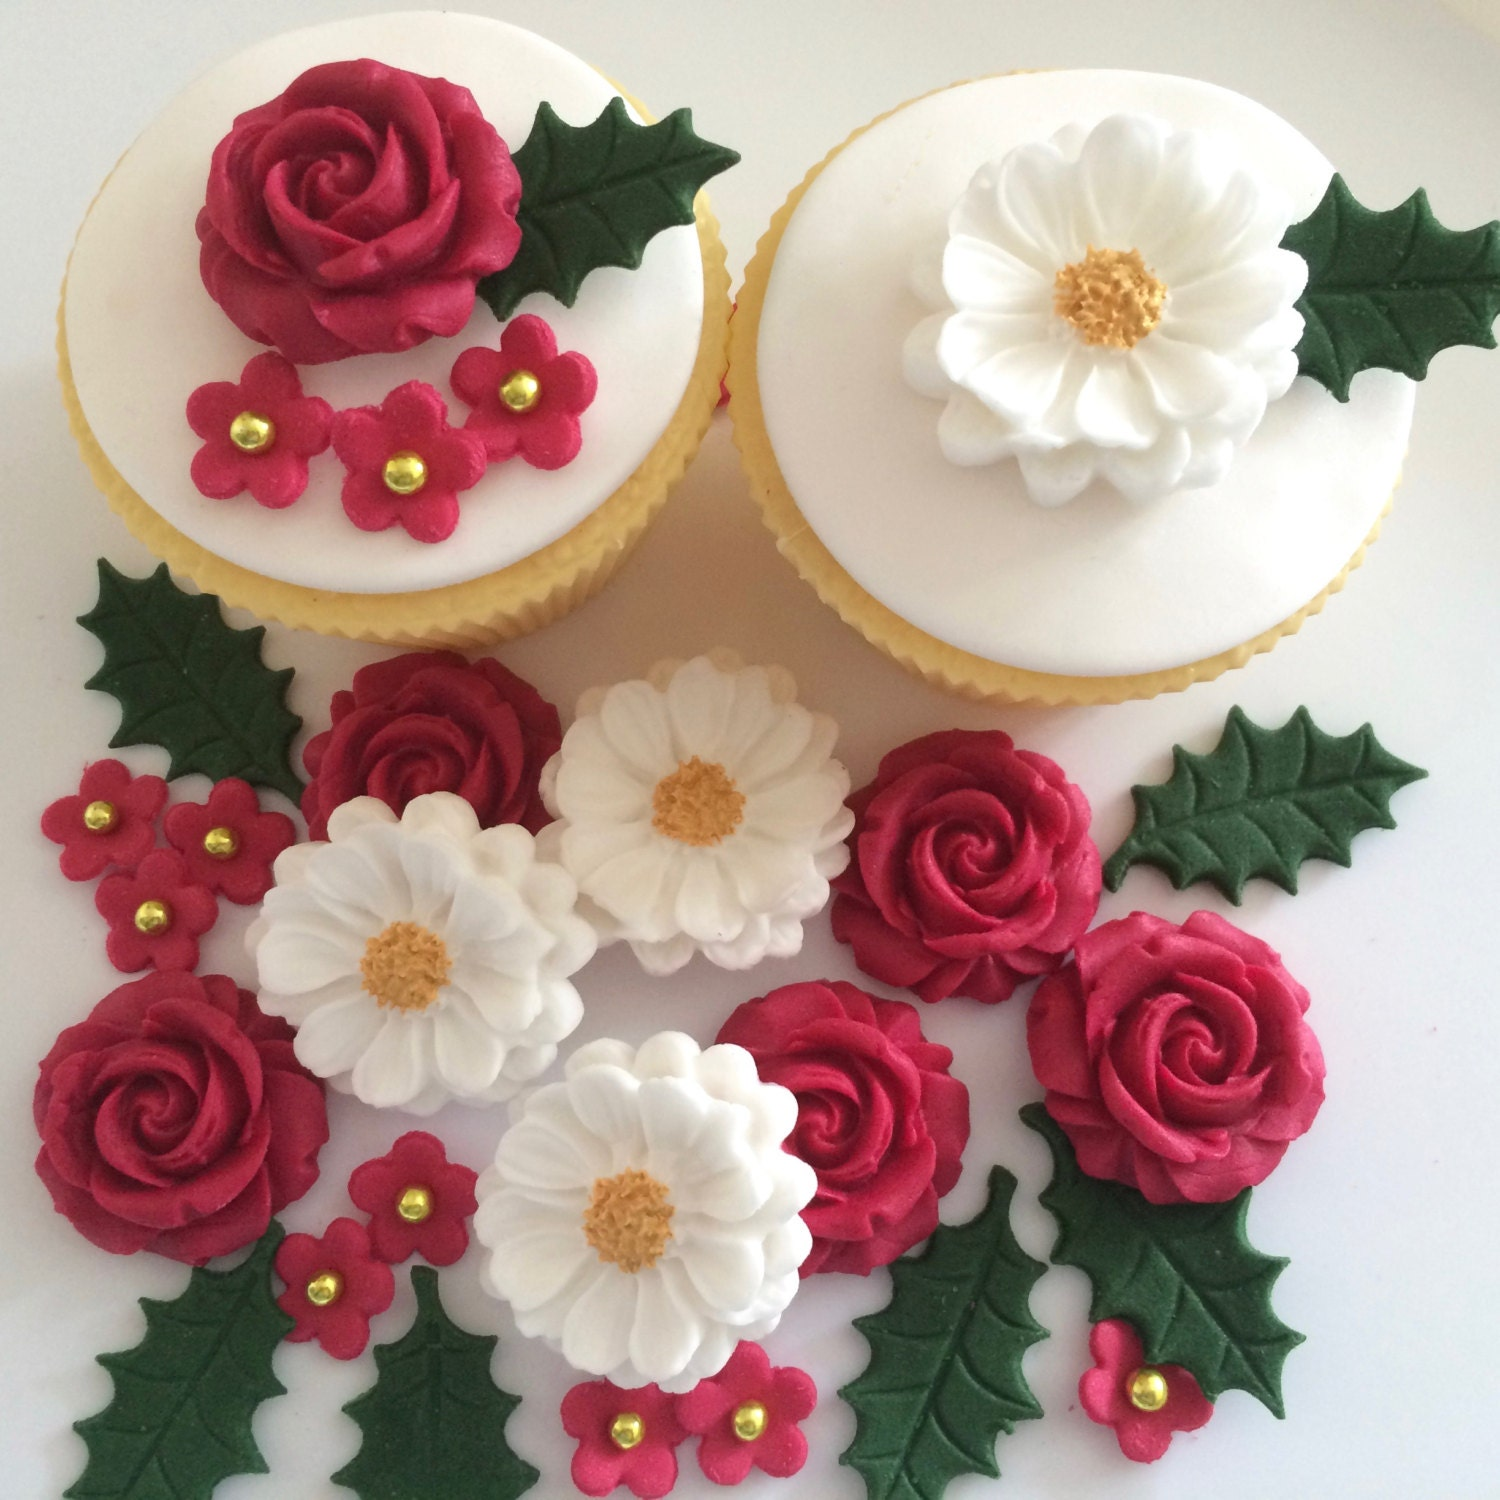 Etsy Christmas Cake Decorations : CHRISTMAS BOUQUET edible sugar paste flowers cake ...